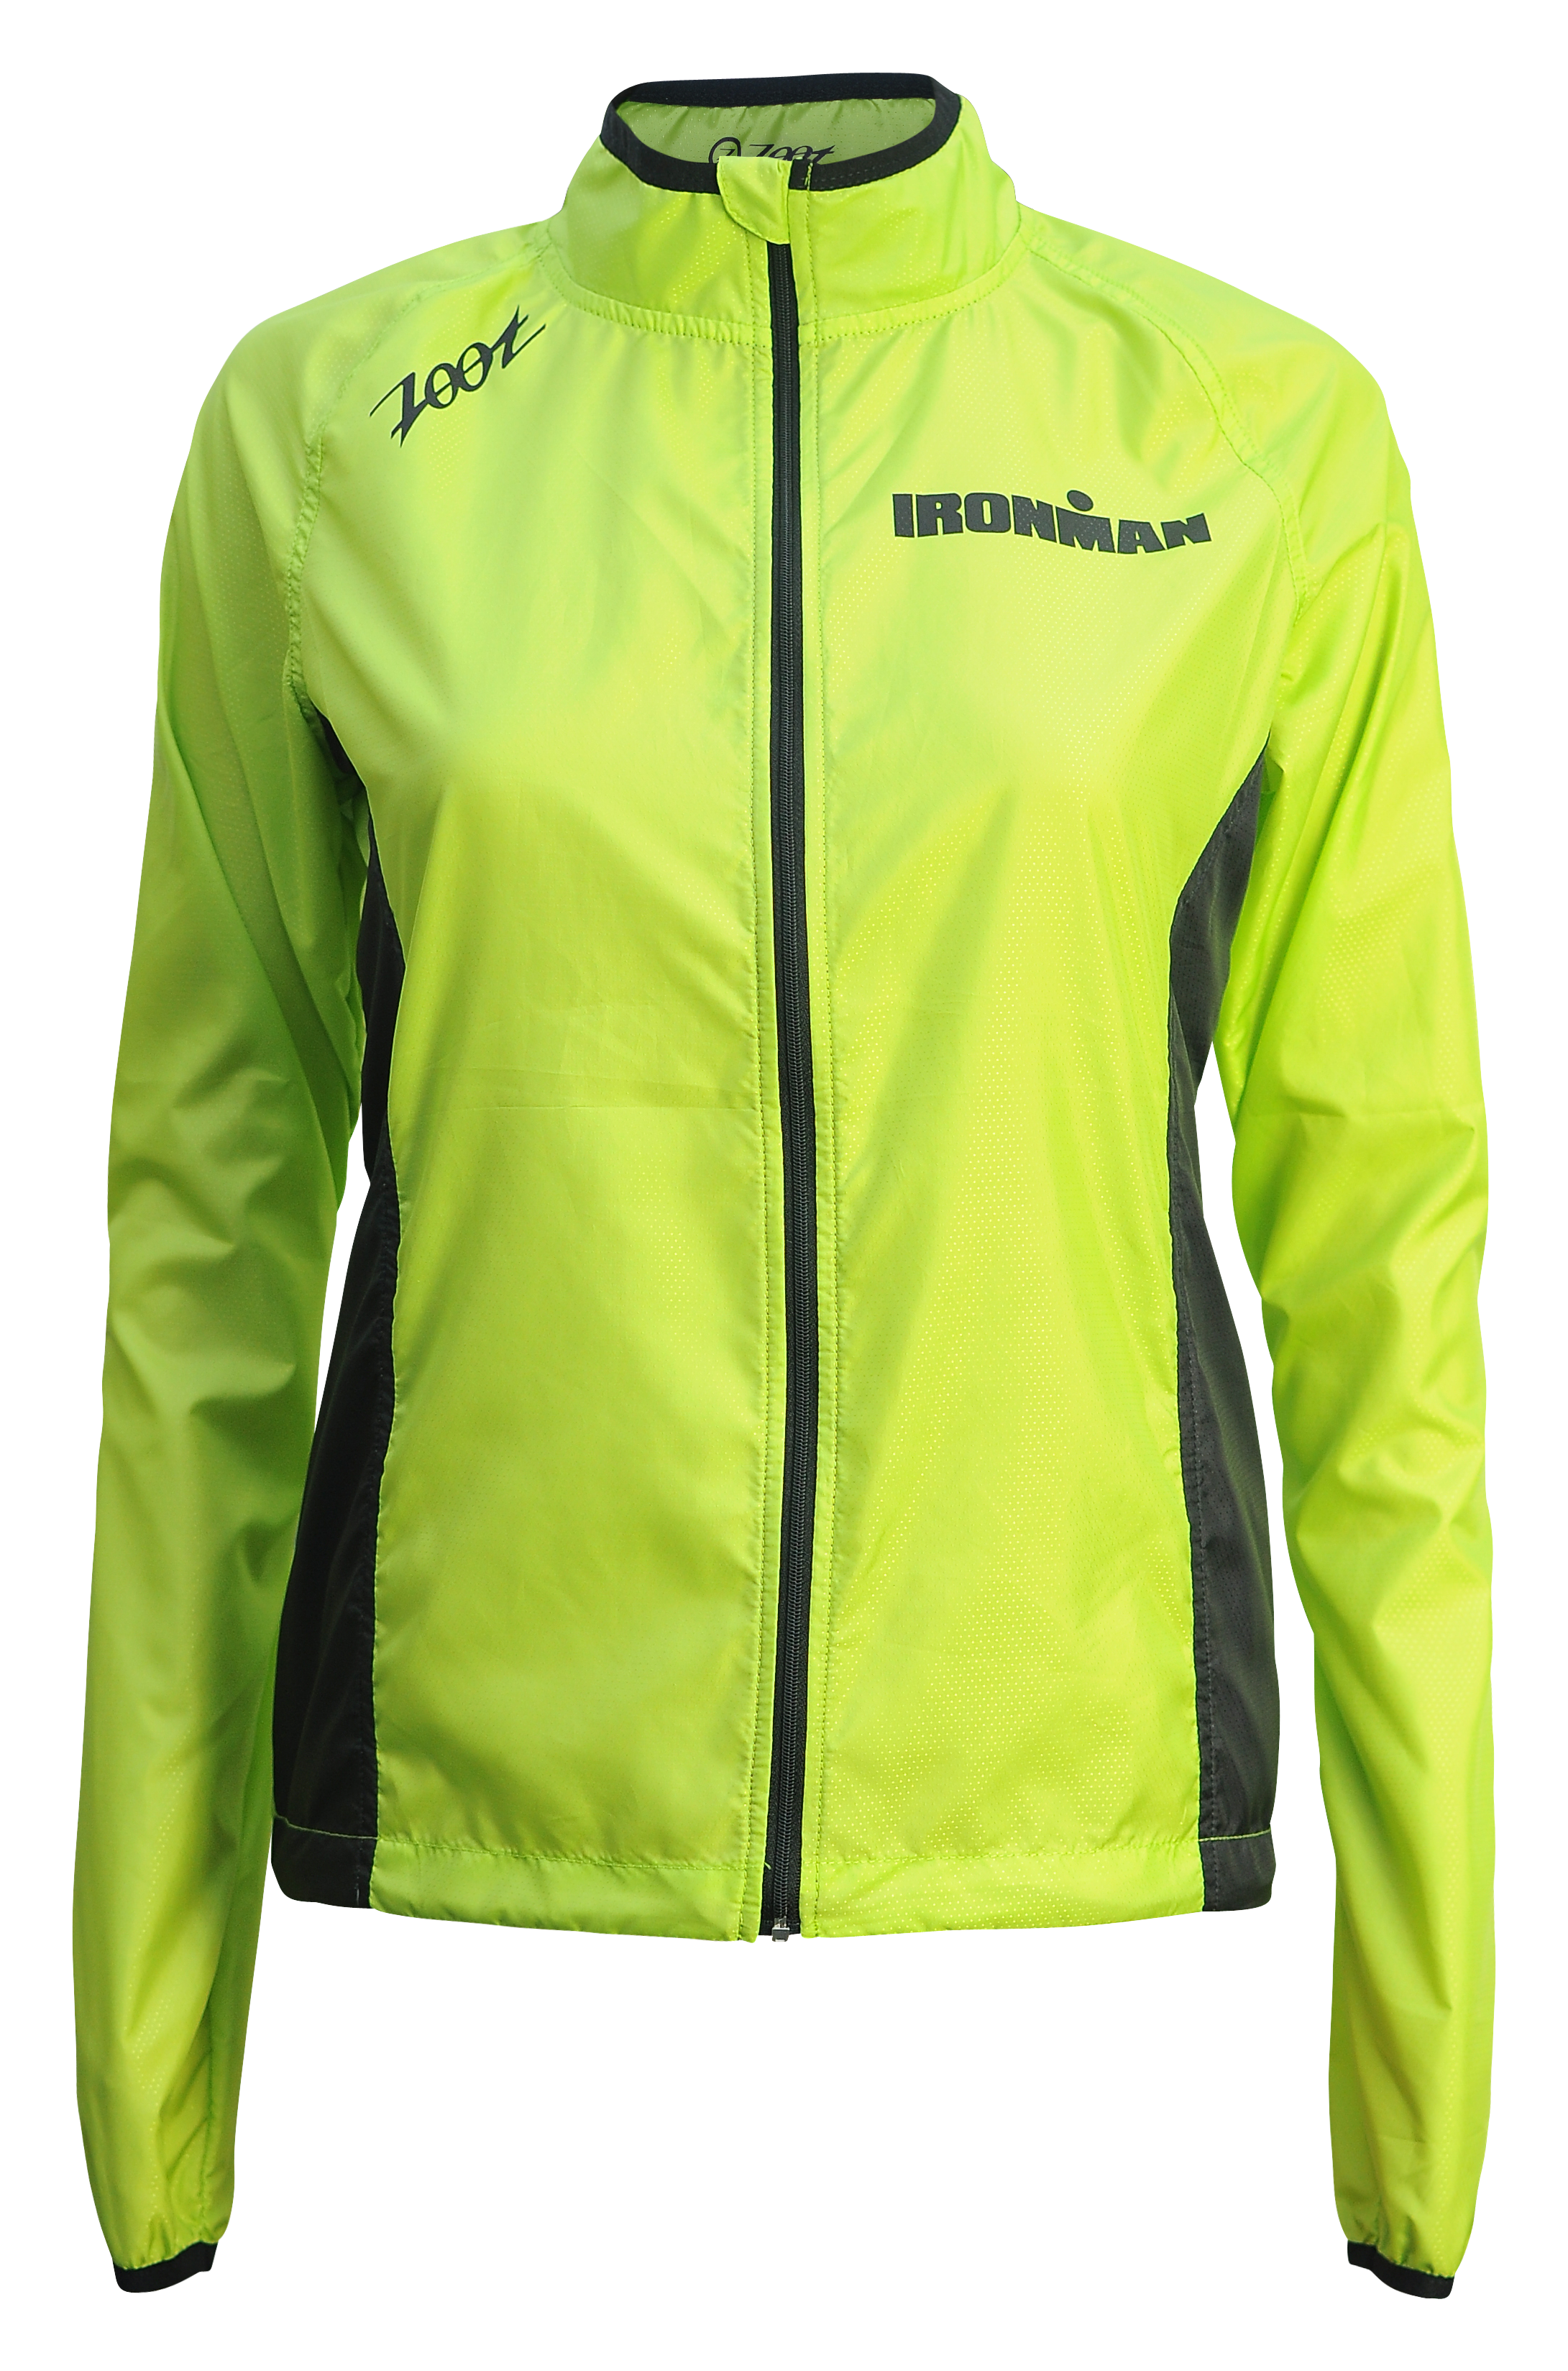 IRONMAN Zoot Women's High Visibility Jacket